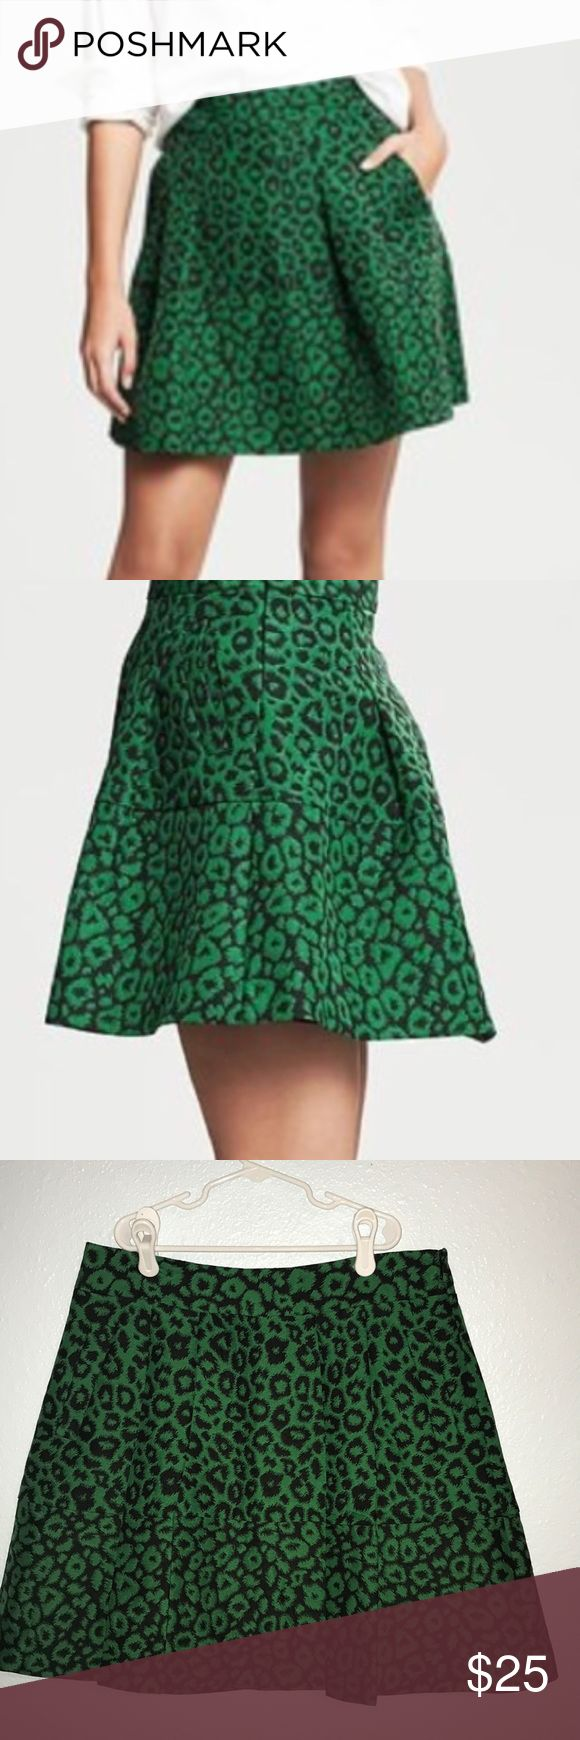 EUC Banana Republic Green Cheetah Skirt Worn Once EUC Banana Republic Kelly Green Cheetah Skirt Worn Once! This skirt is fantastic! I wore it once last season, then lost a few pounds. Now it's just too big!!! Luv it! It deserves a good home. Pet Free Smoke Free 🏠 Banana Republic Skirts Mini